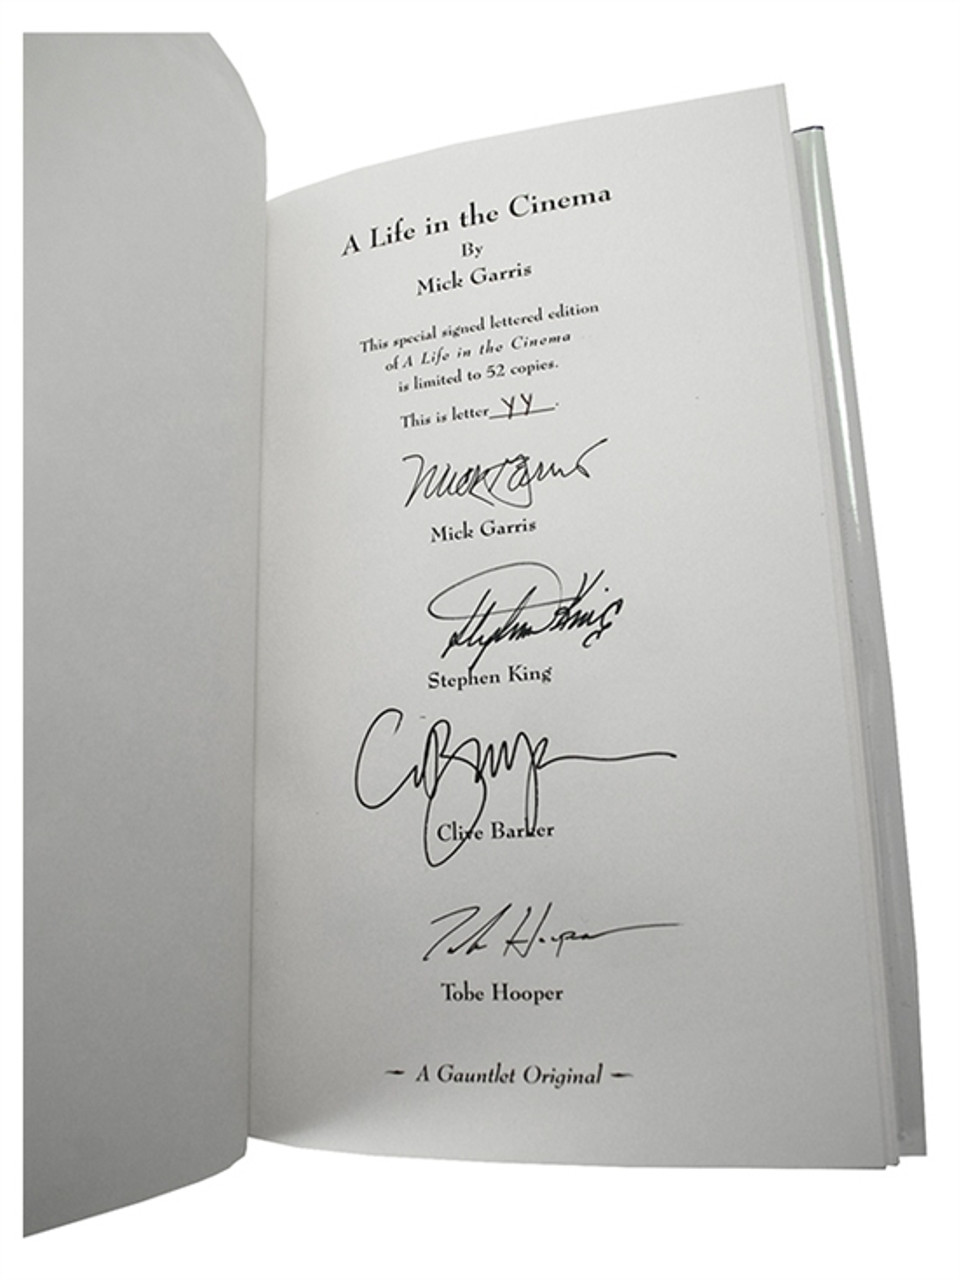 Stephen King Life in Cinema Signed Lettered Limited